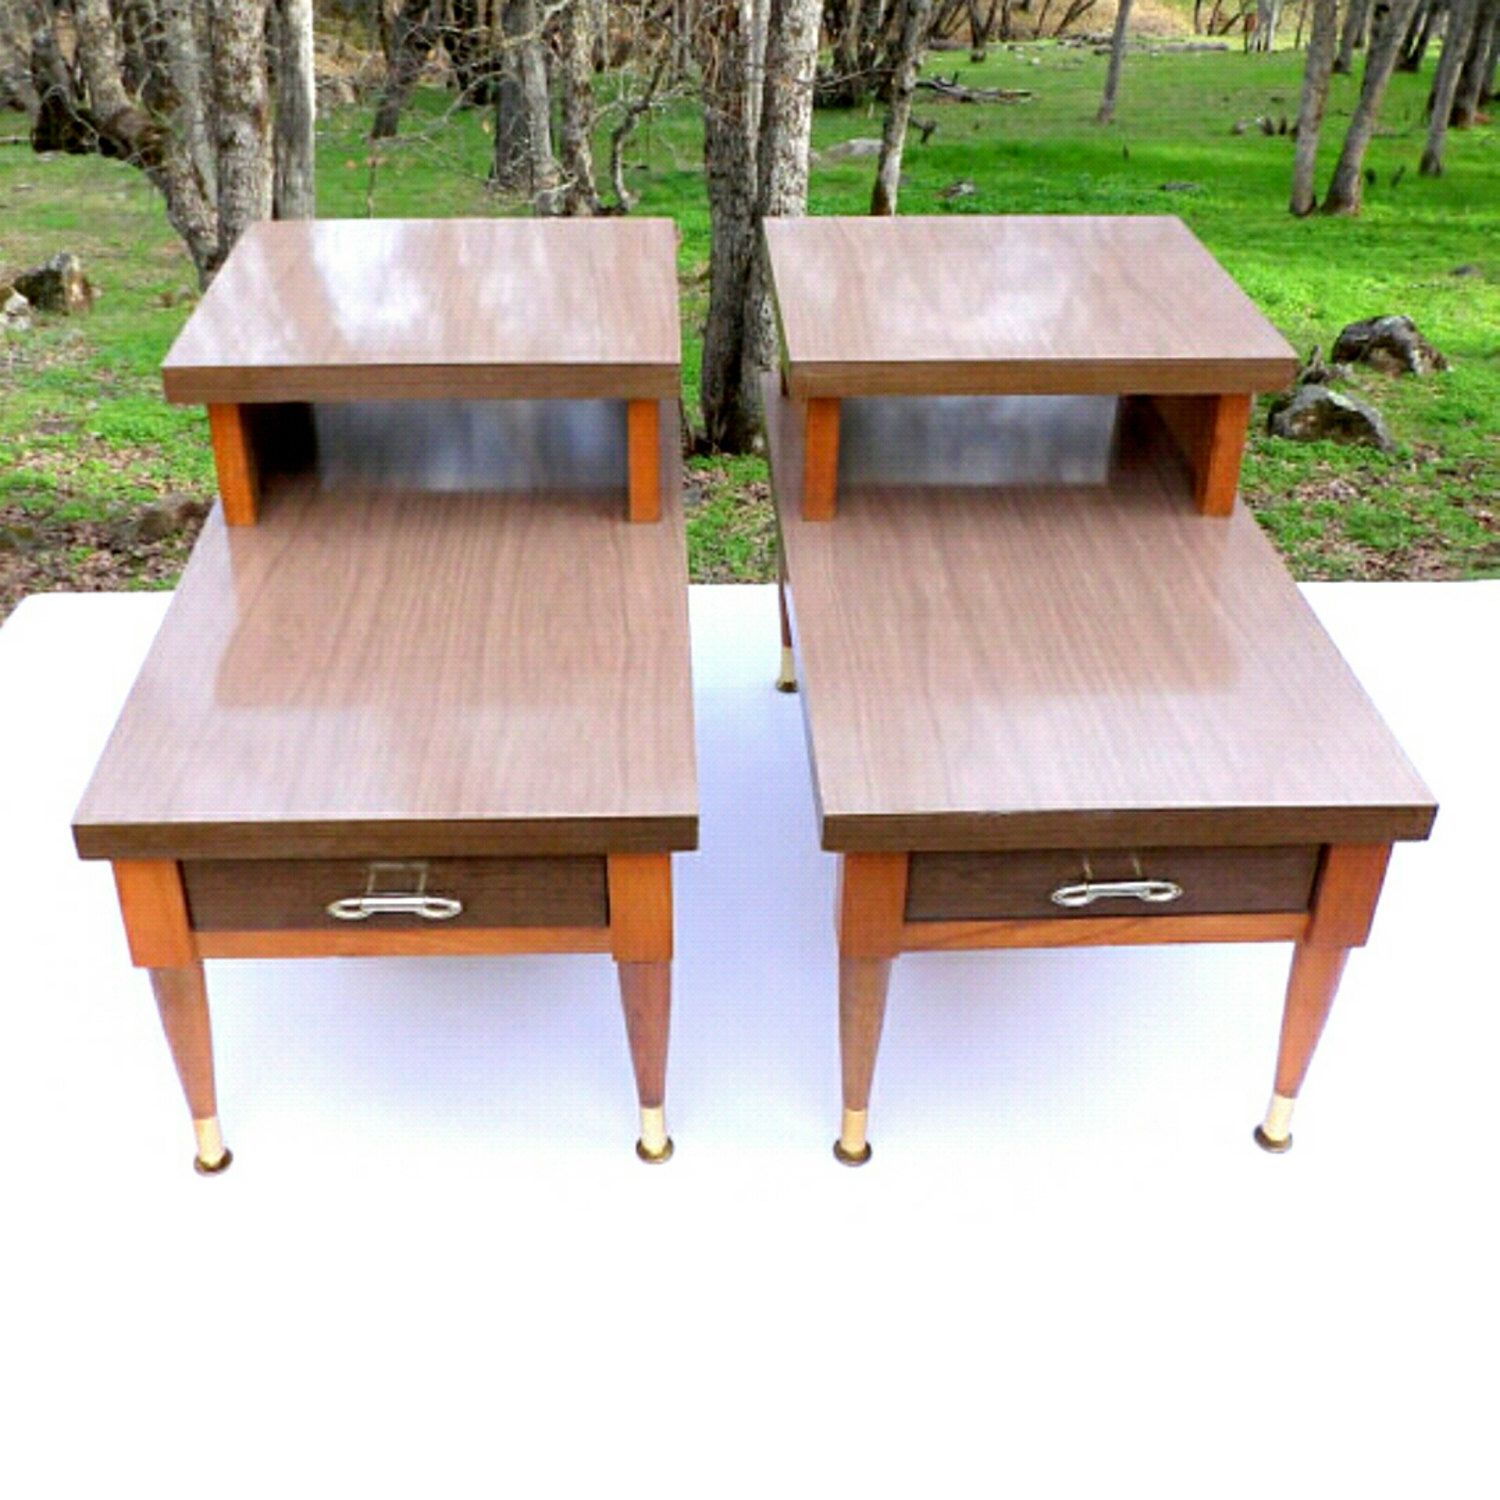 Best Night Stands Nightstands Pair End Tables Mid Century 400 x 300